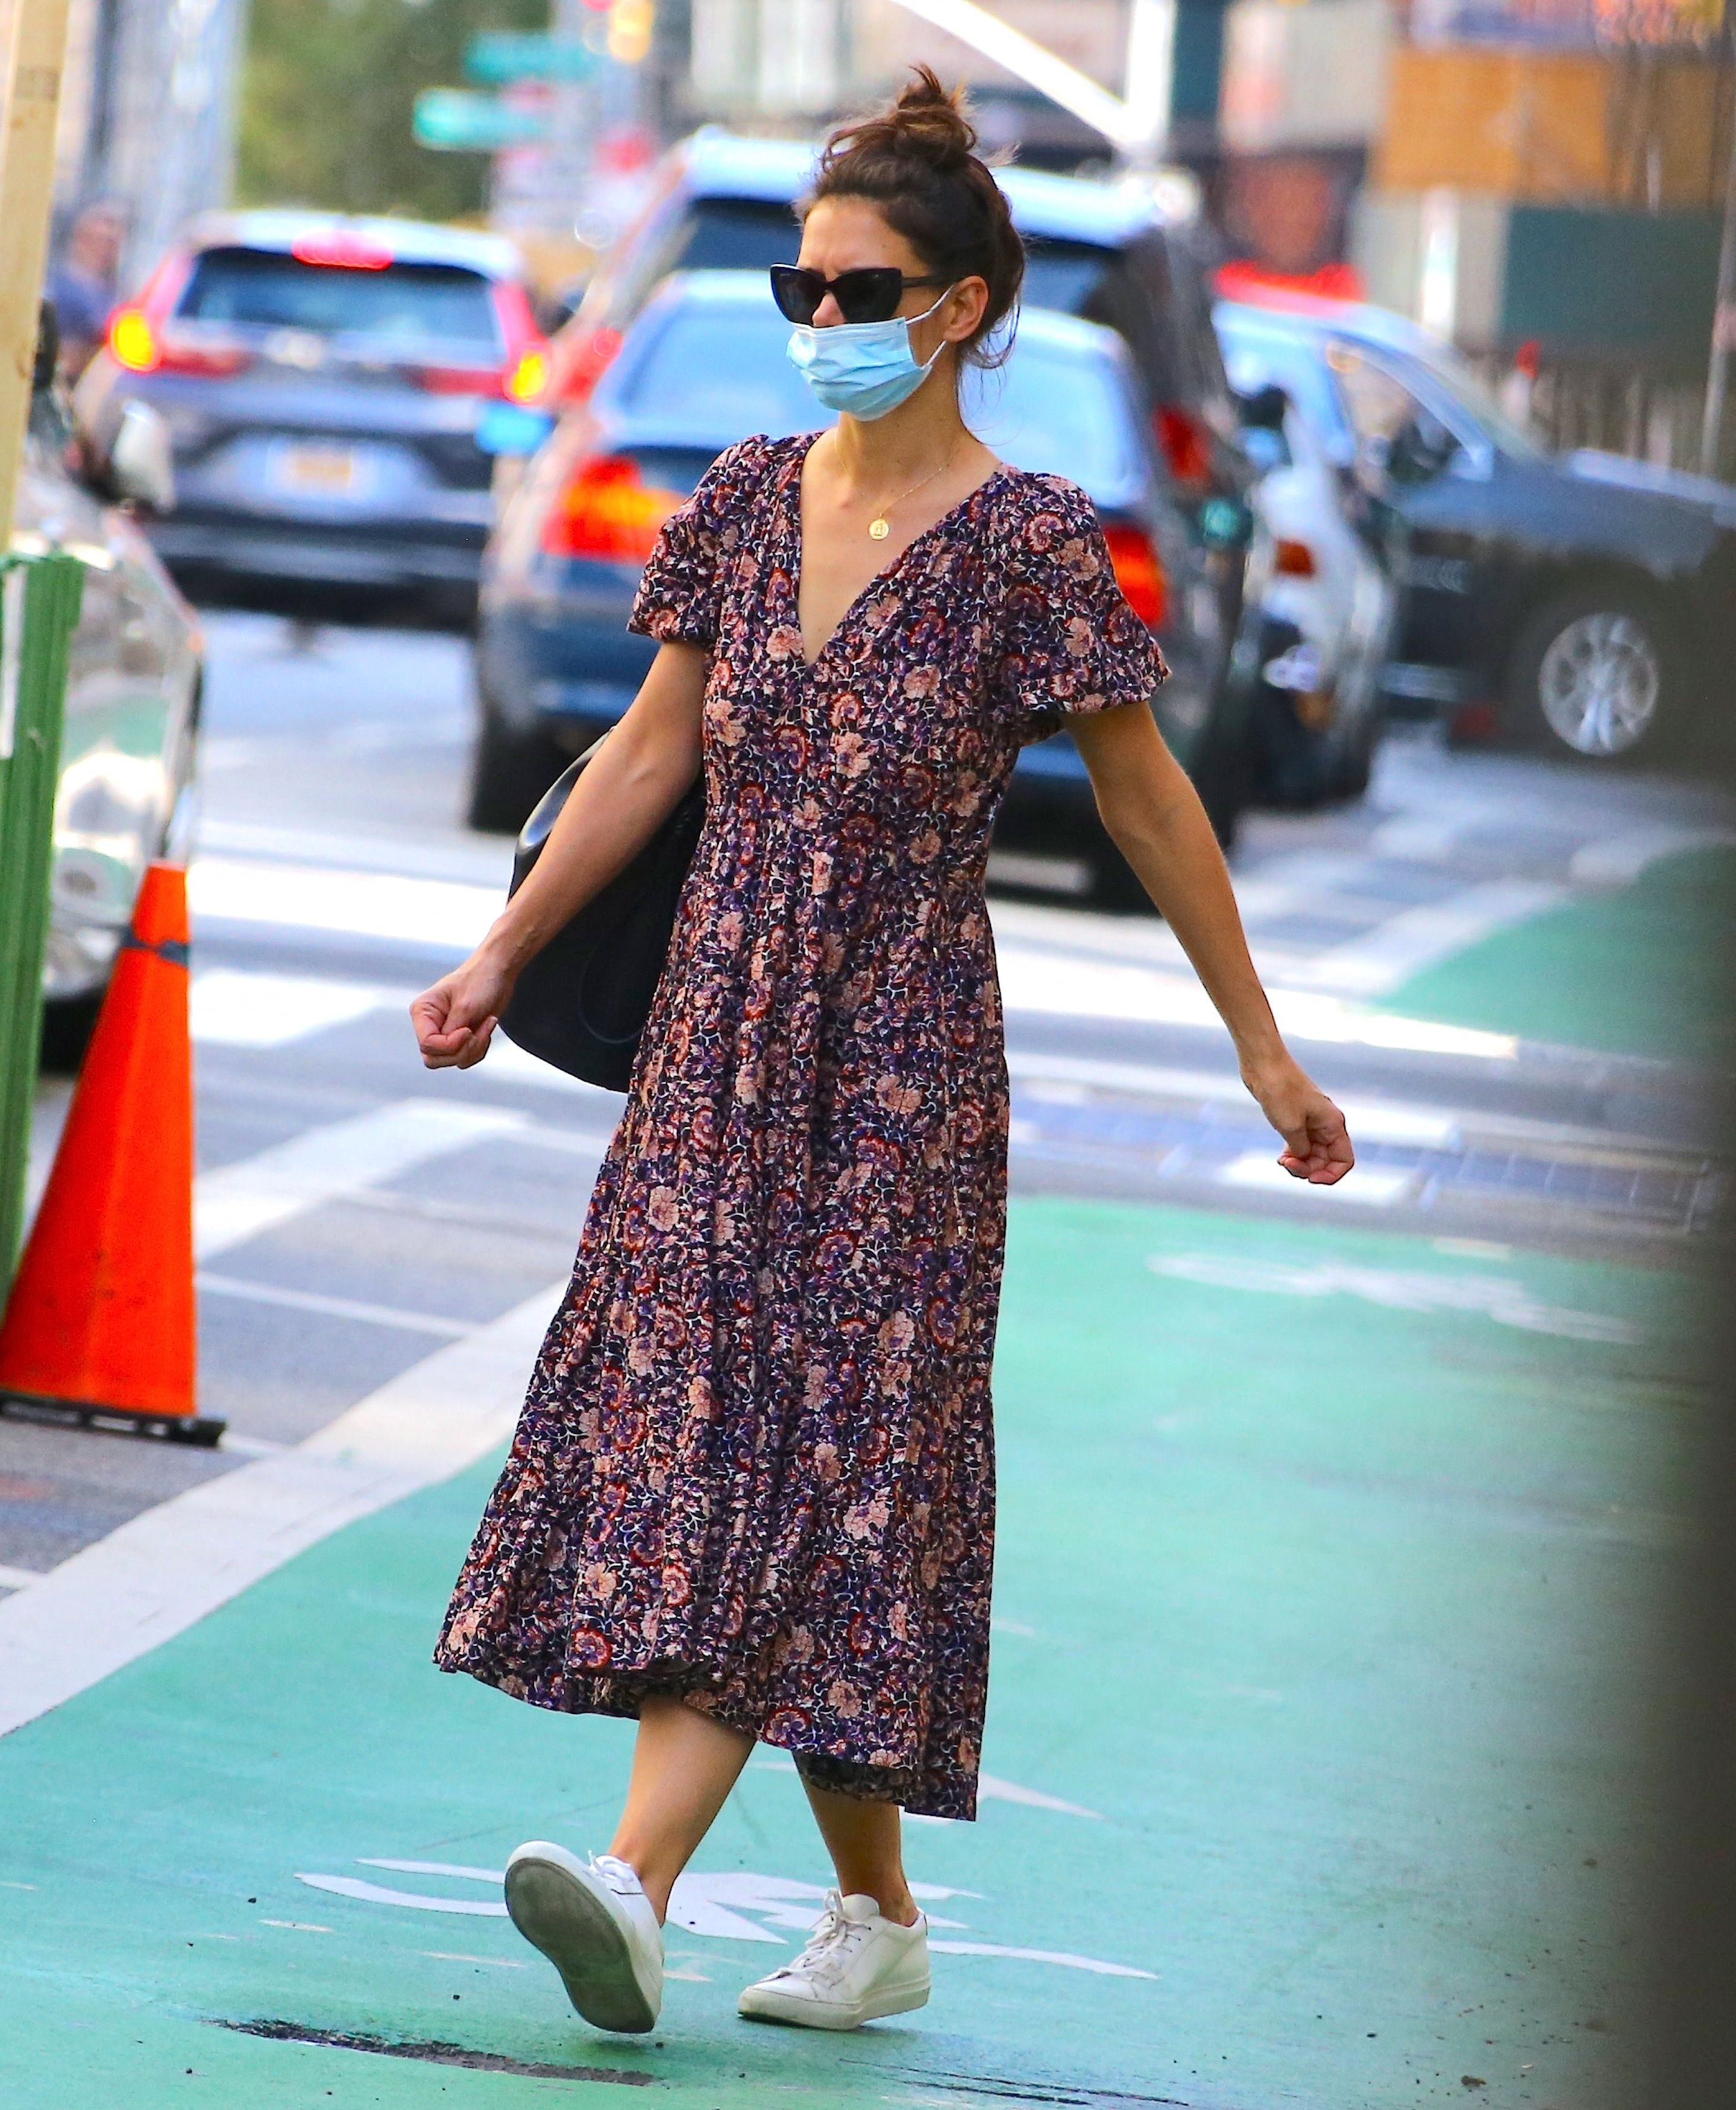 Katie Holmes Wore an Ulla Johnson Floral Dress While Out in New York City